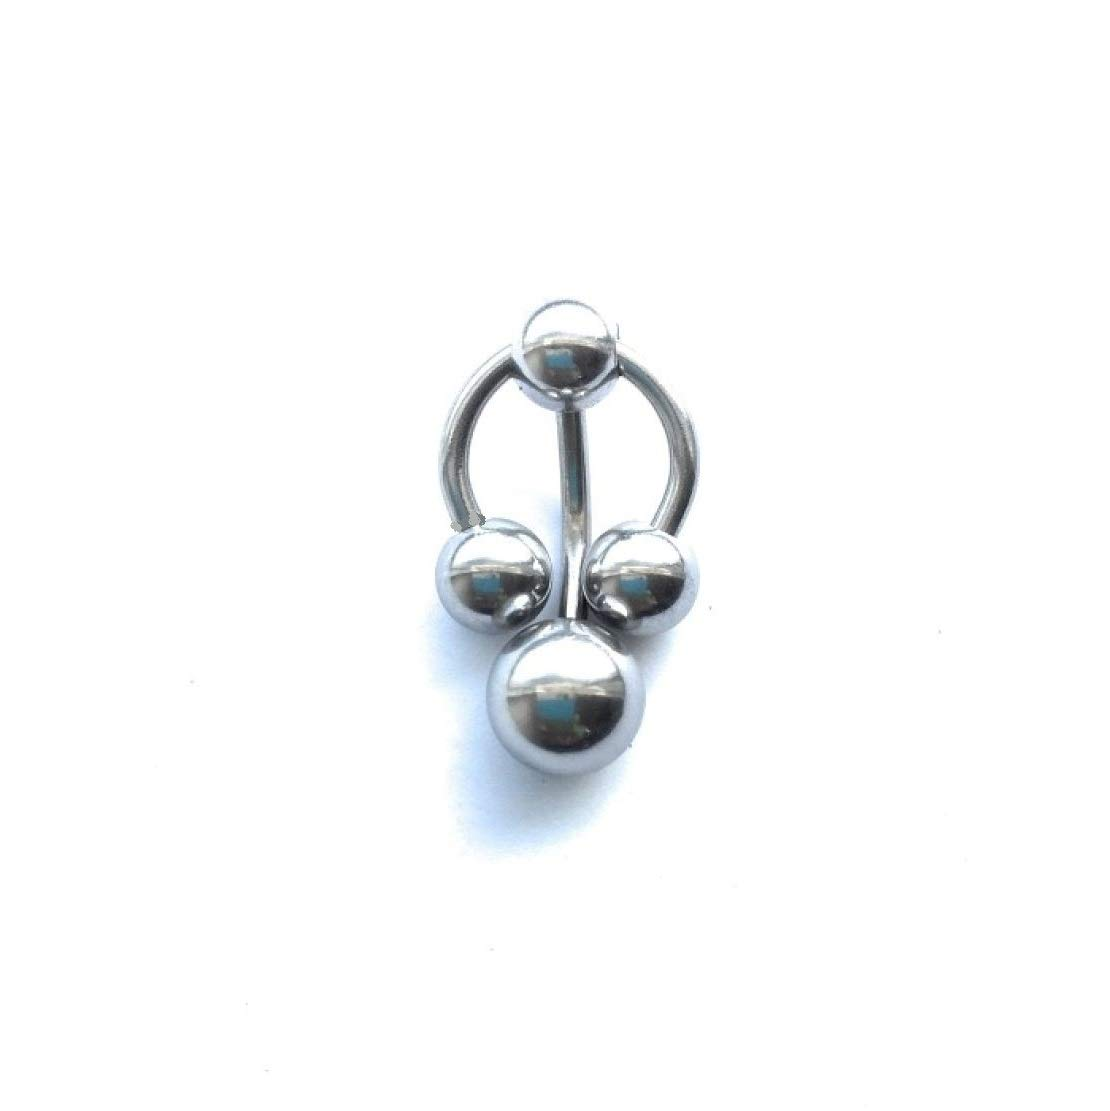 Surgical Steel Horseshoe & Barbell Combo for VCH Piercing. by Generic